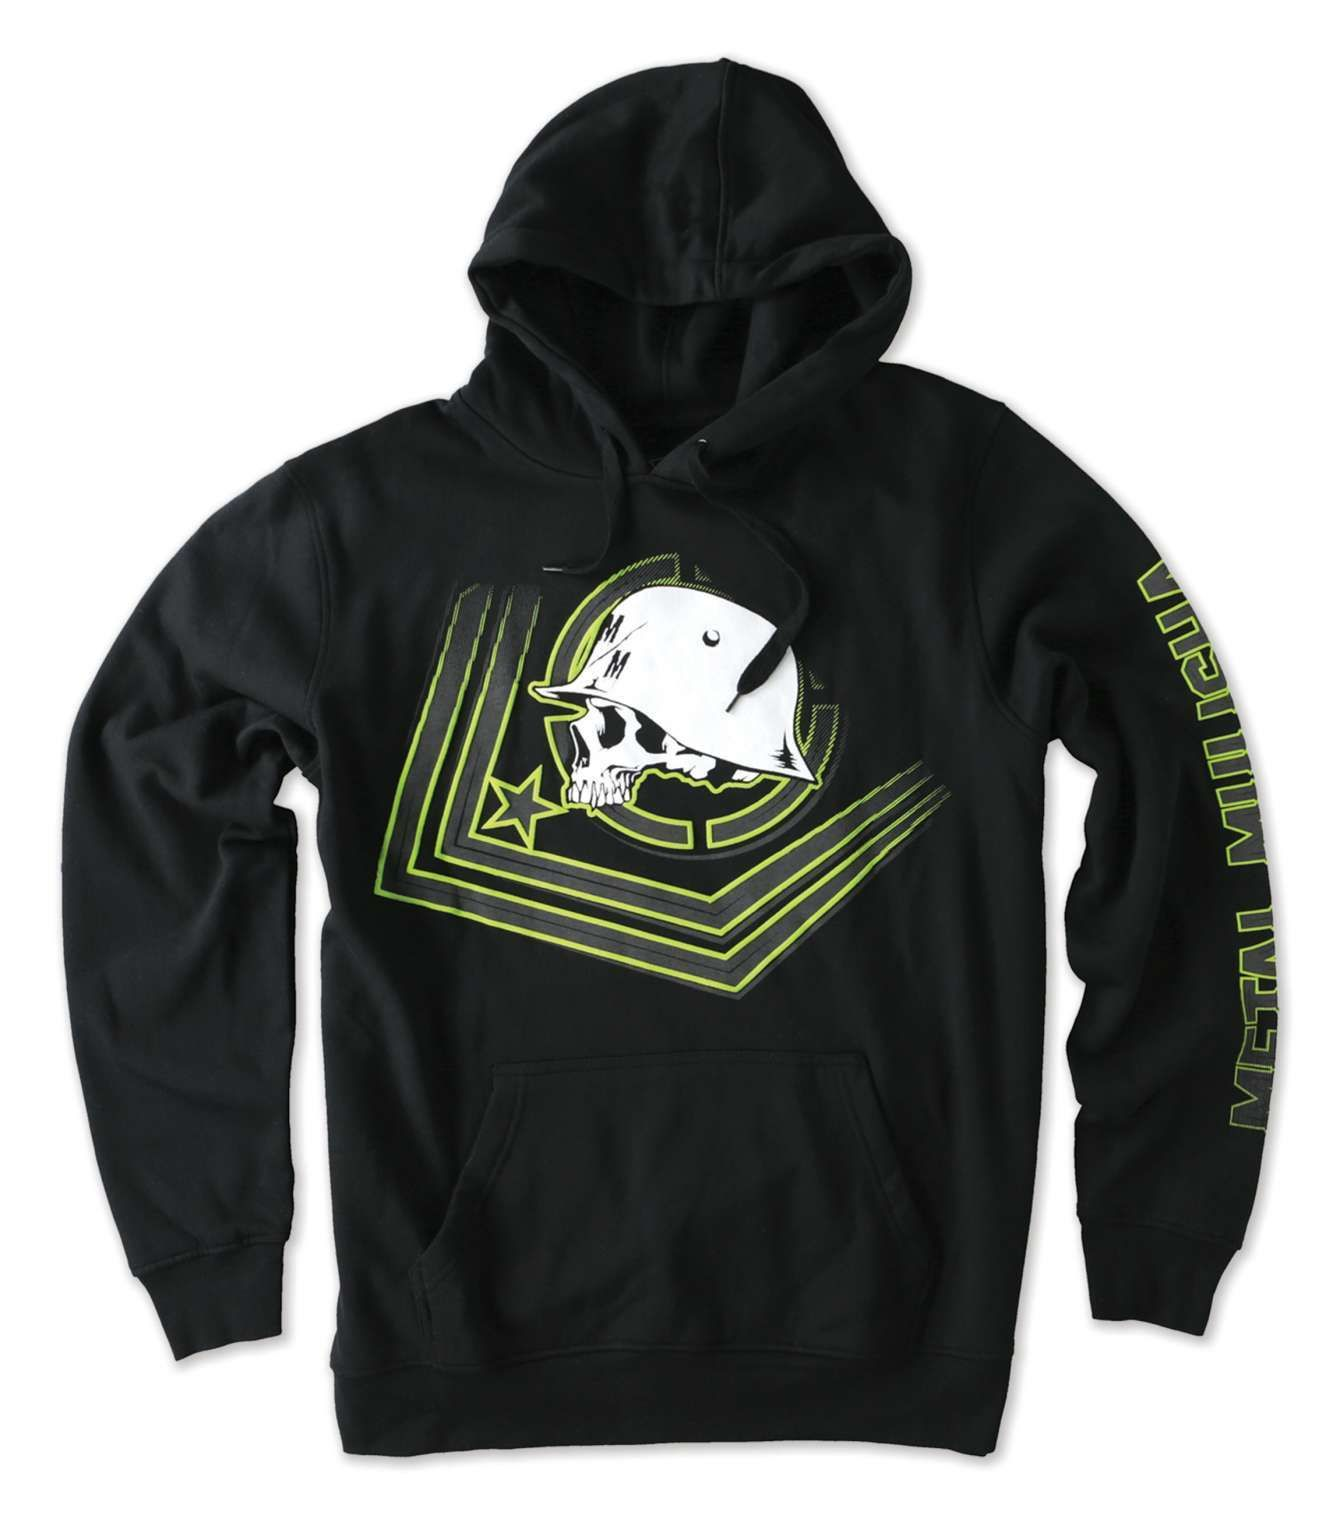 MetalMulisha Check Point Hooded Pullover via  Fashion  Orlando  Luquillo   CasaBlanca   a7107ee8aaf